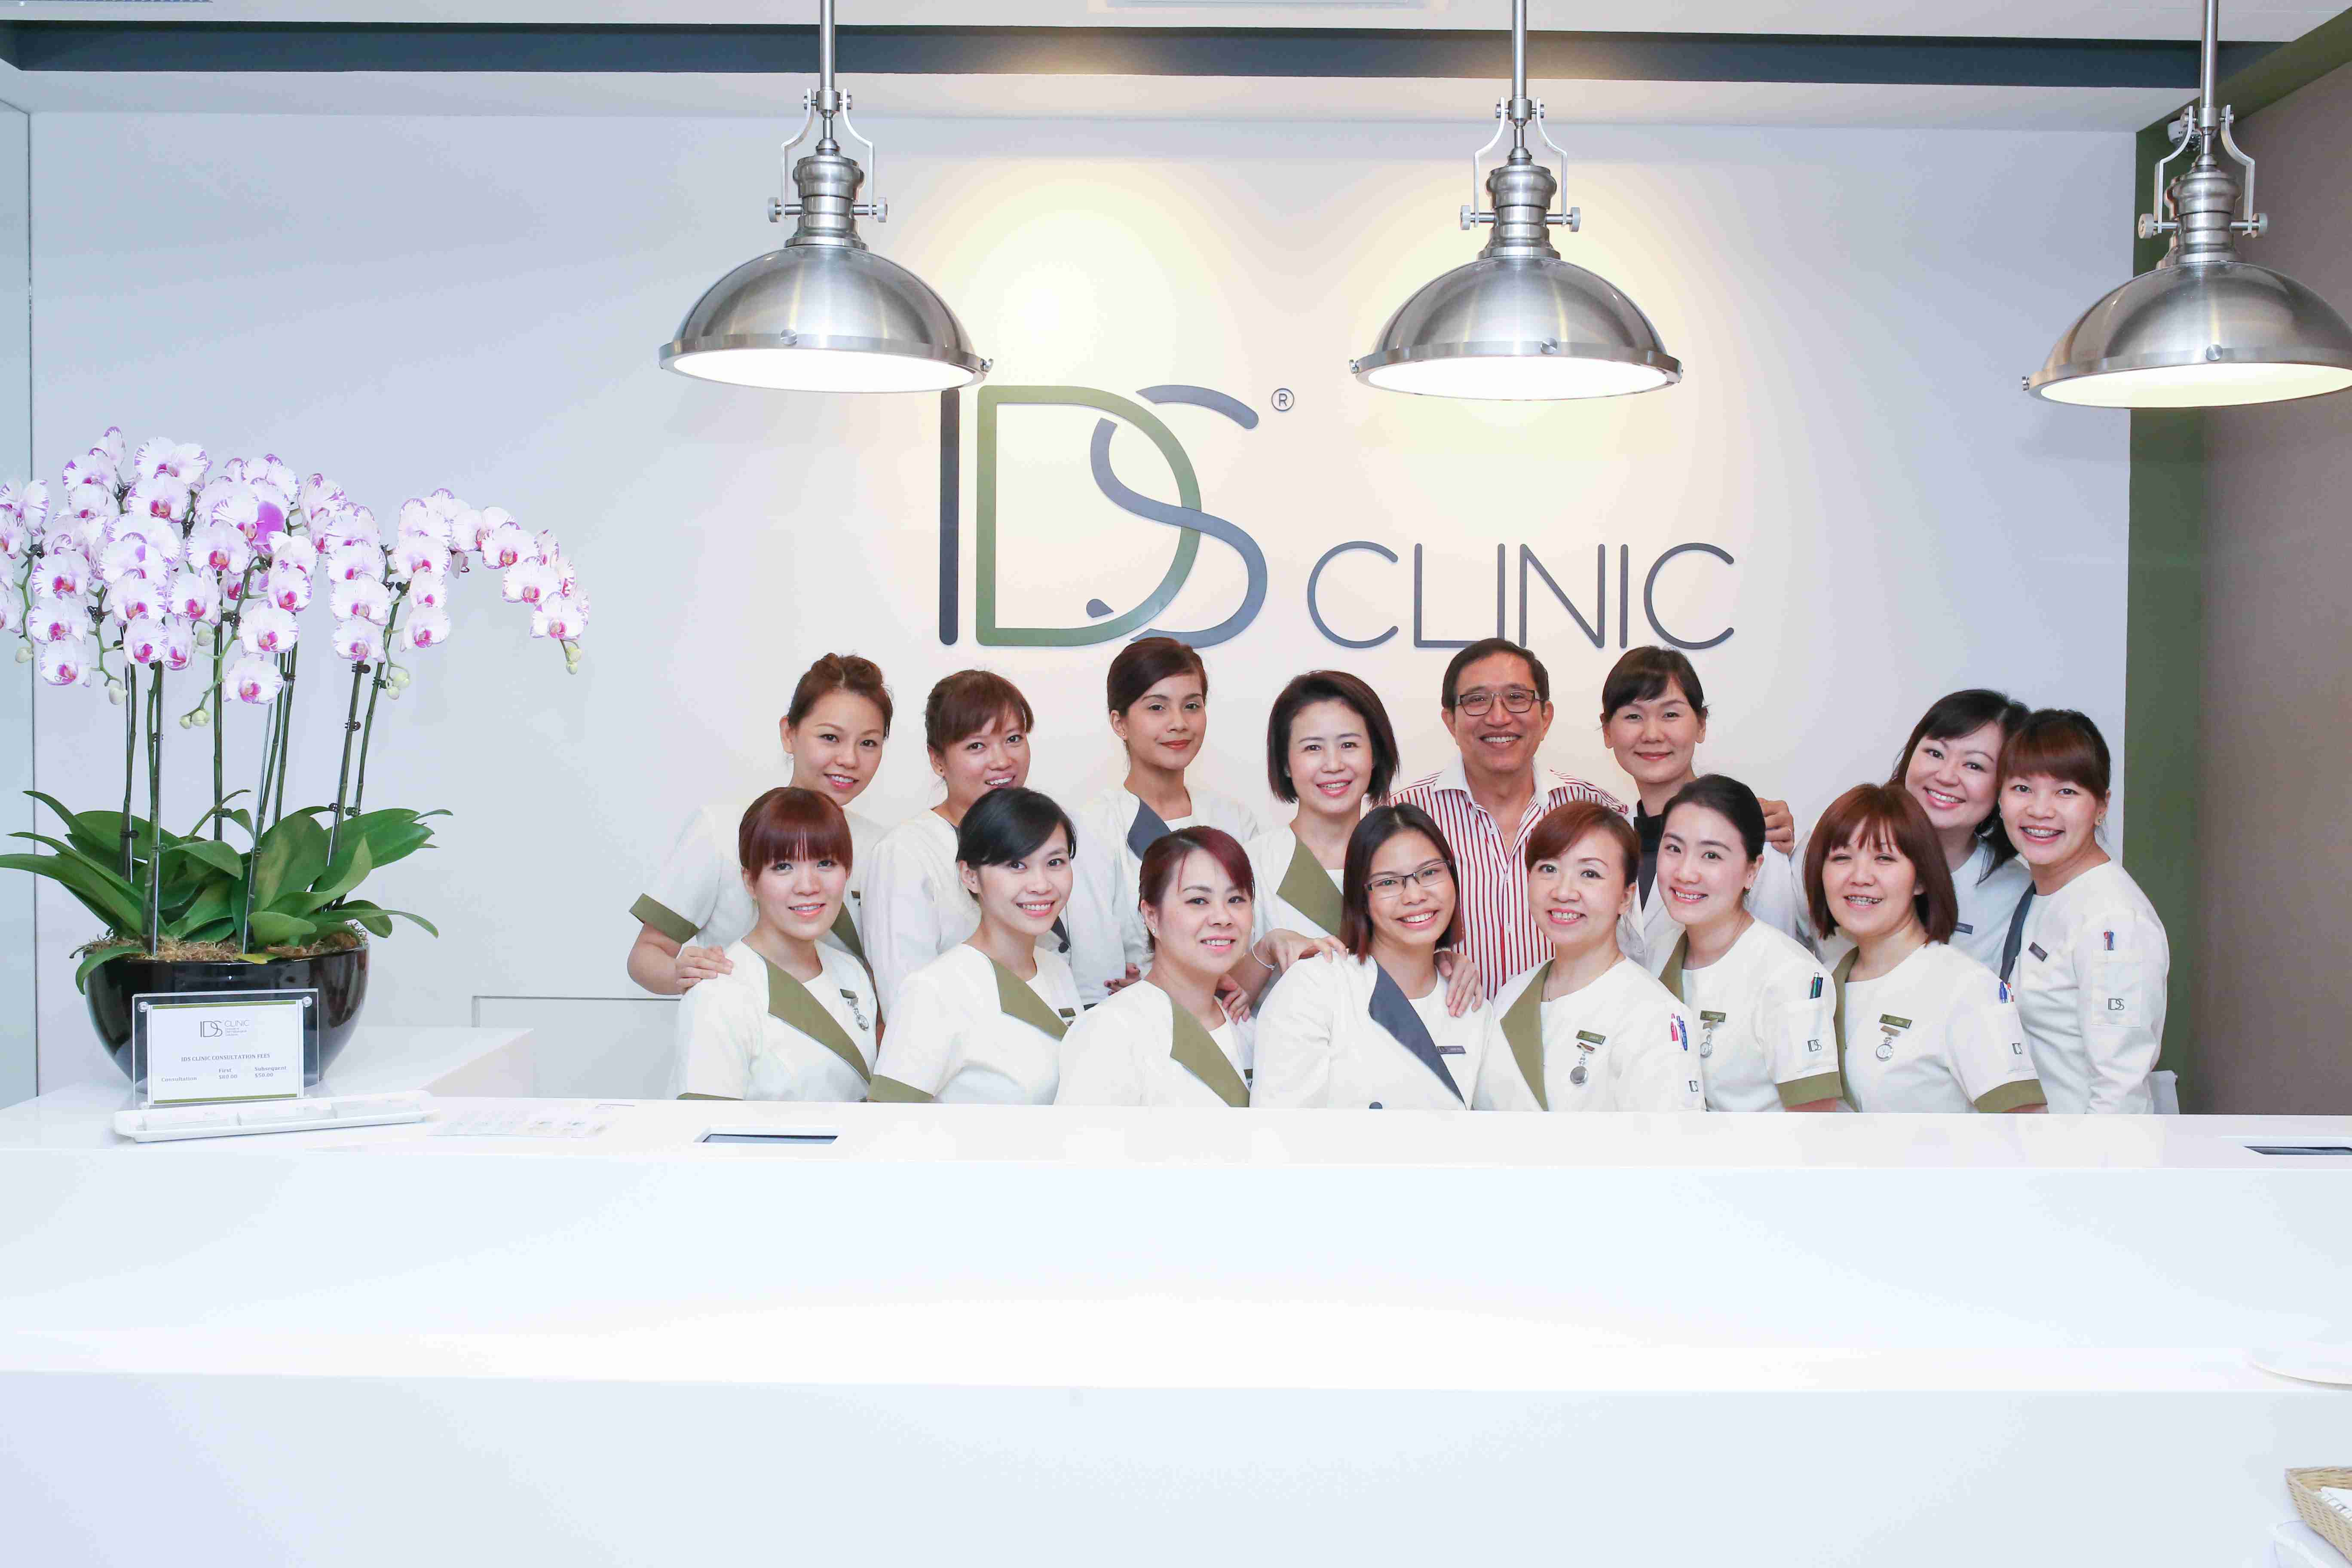 IDS Clinic - Media Launch Event (2014)